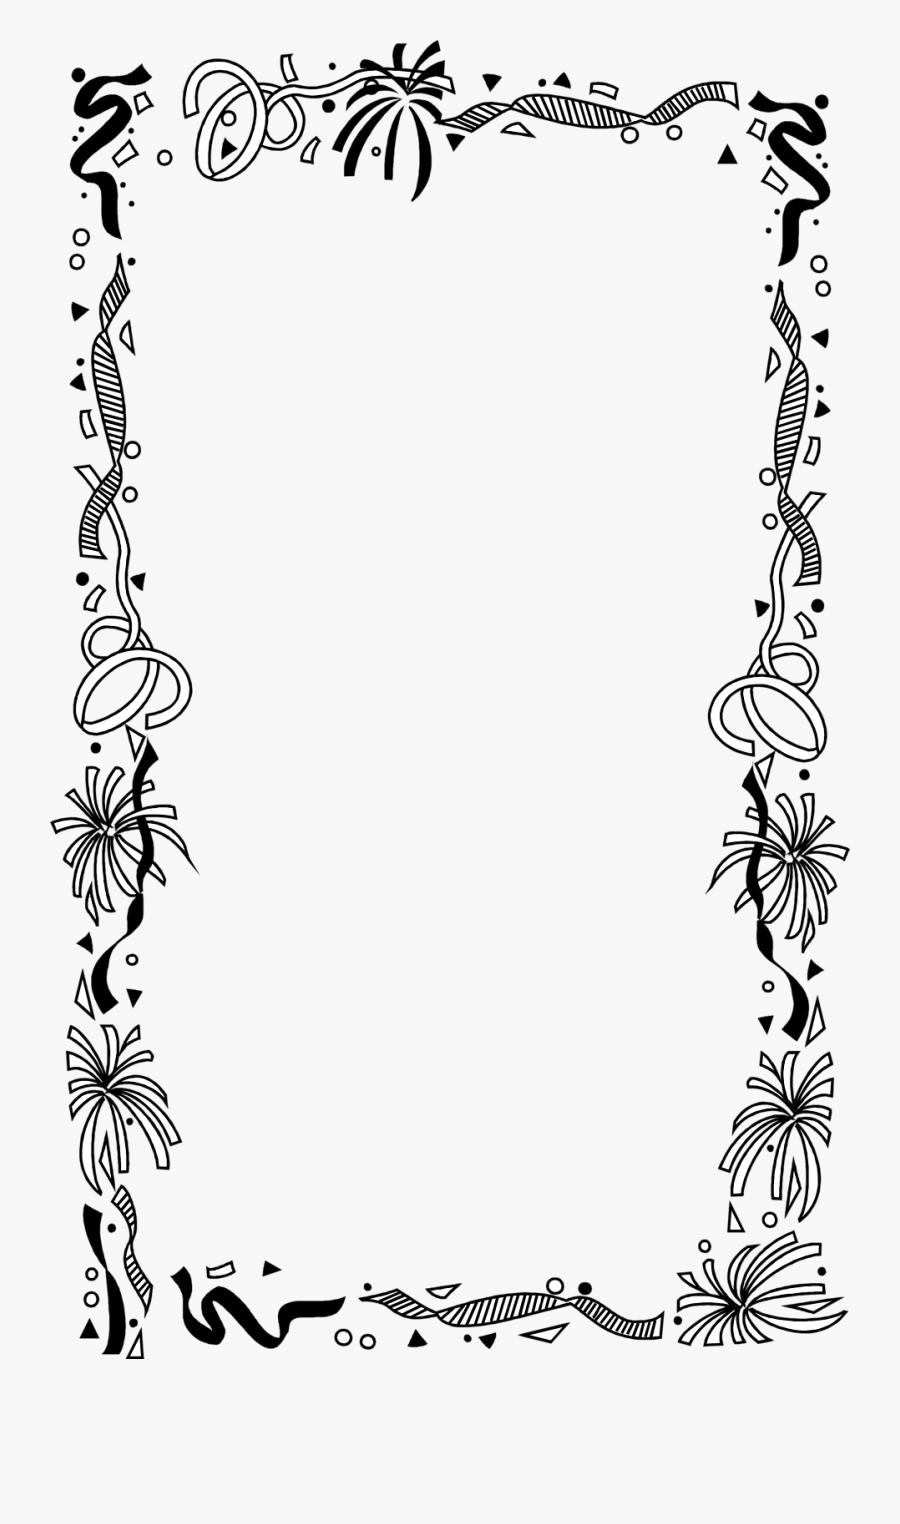 Borders And Frames Picture Frames Drawing Clip Art - Border Birthday Frame Png, Transparent Clipart